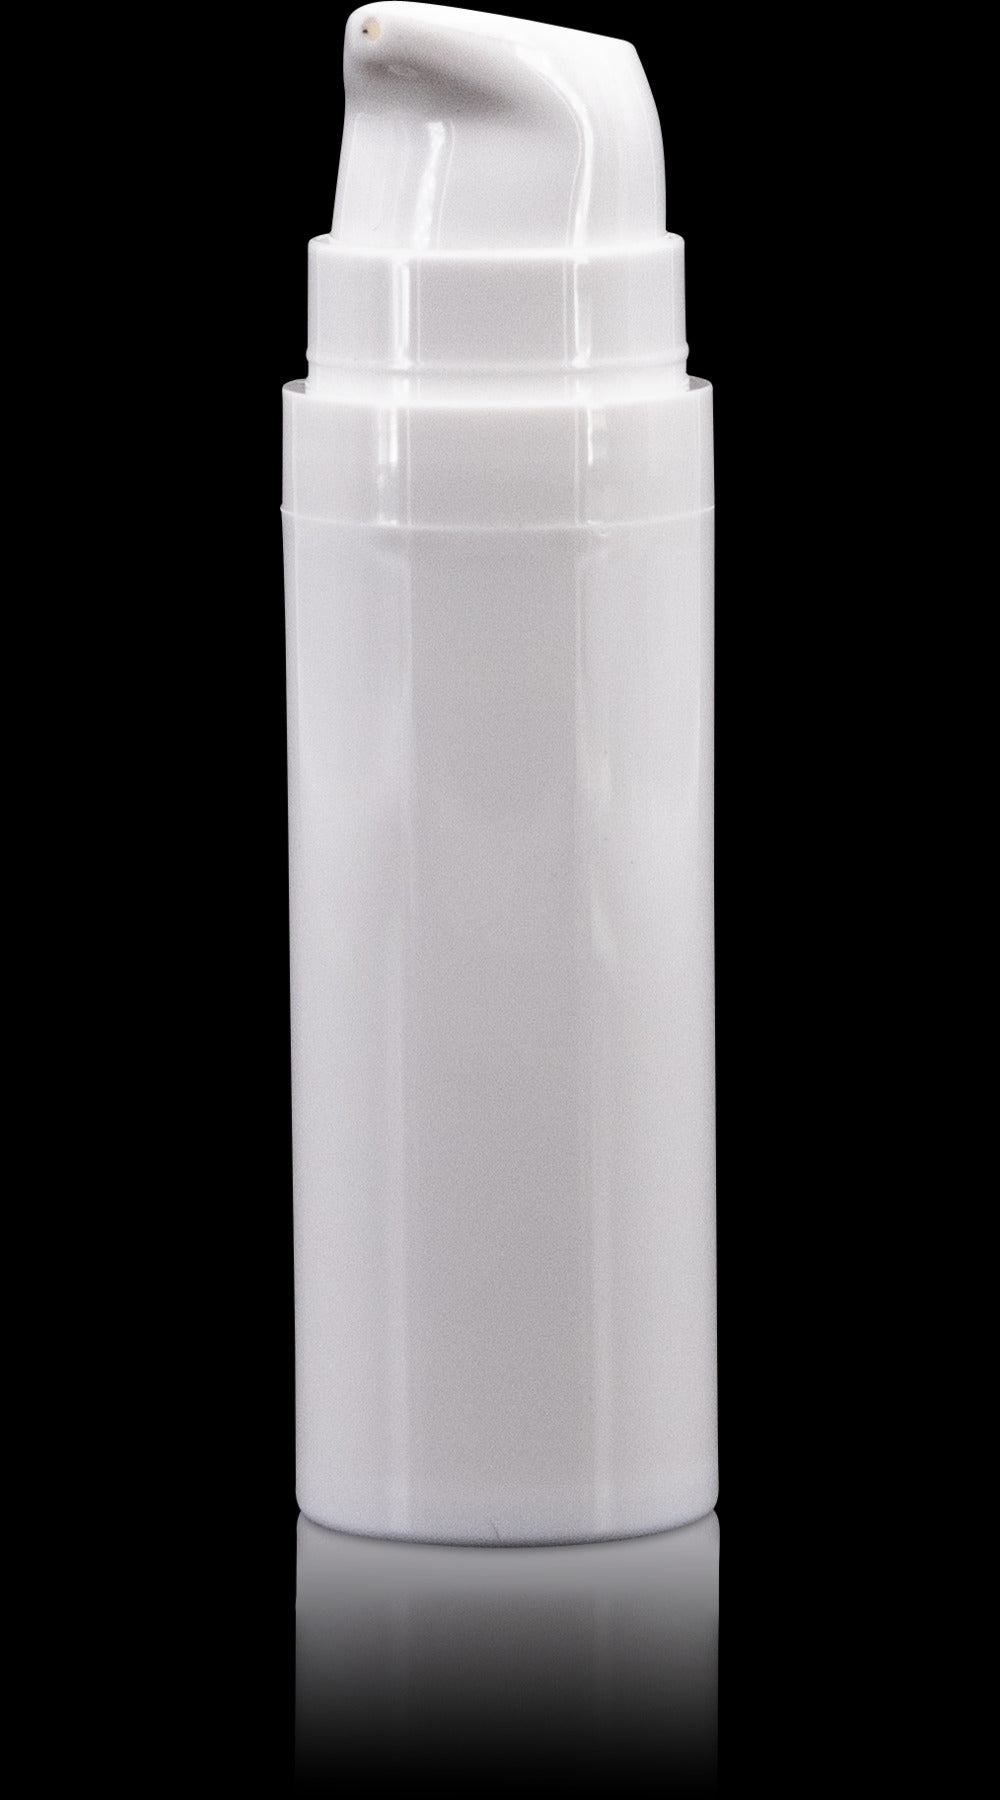 Pure 10 ML White PP Airless Bottle with Frosted Cap